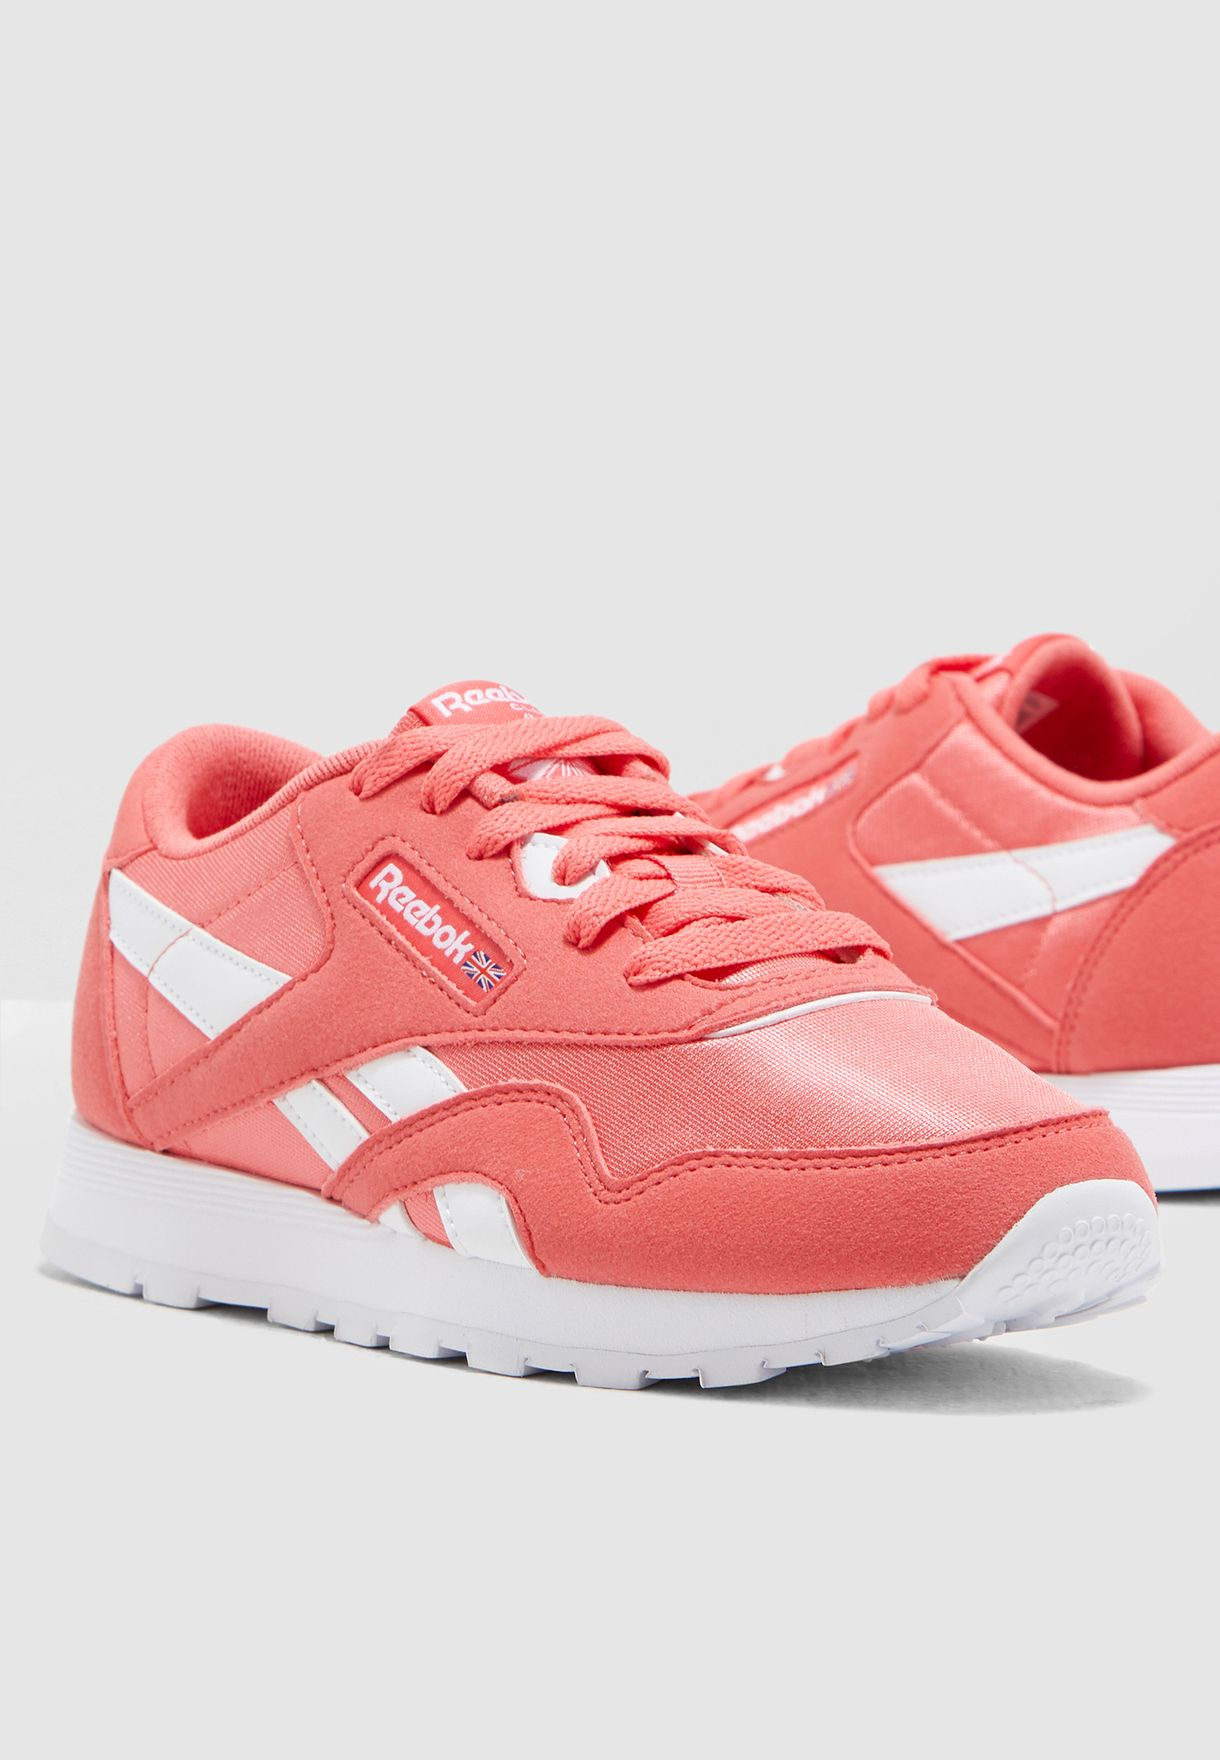 Shop Reebok pink Classic Nylon MU CN7626 for Kids in Saudi ... 233a290f1